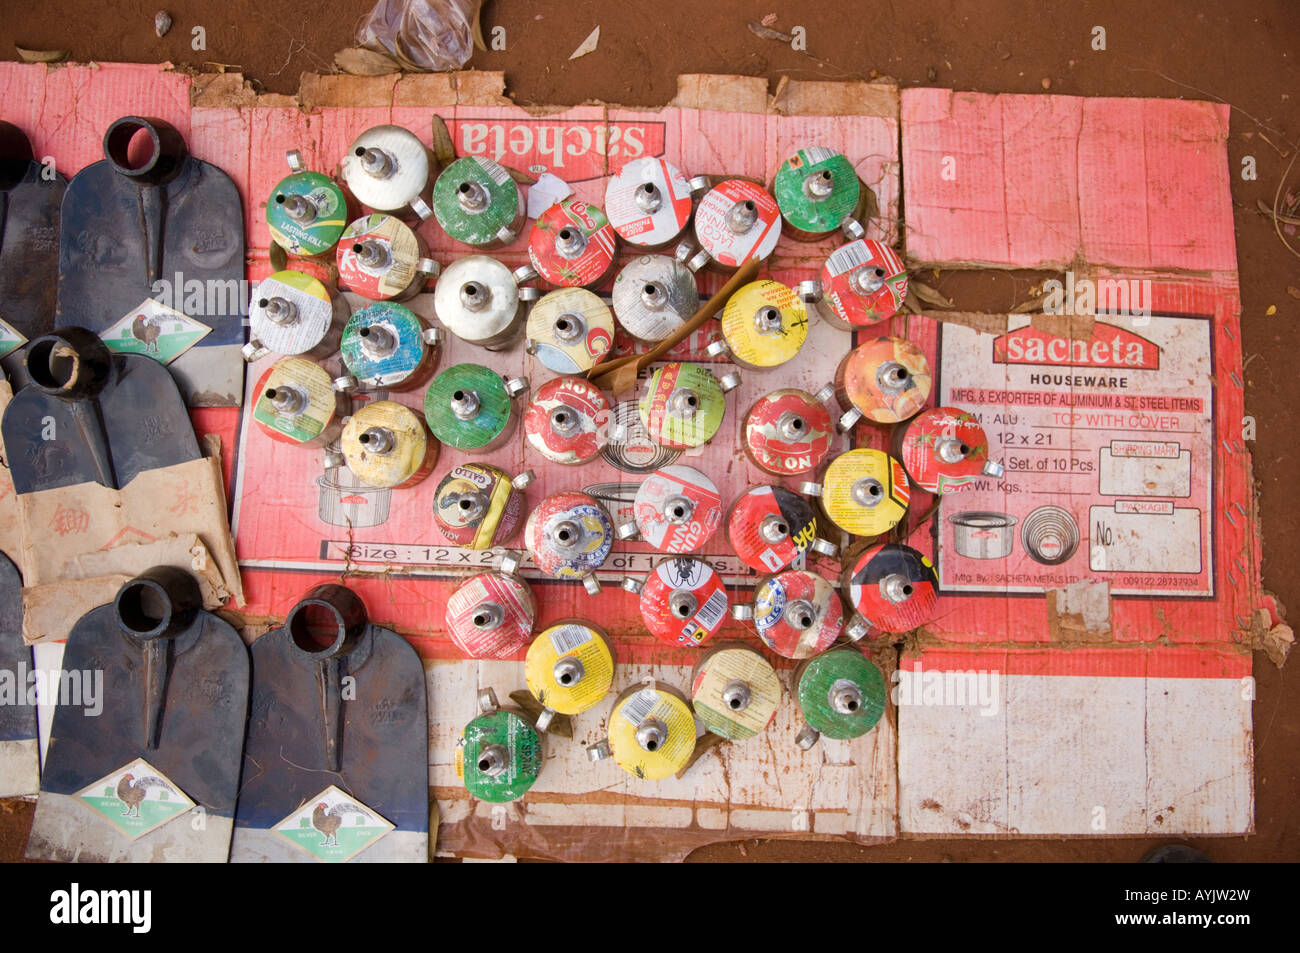 Cluster of home made oil lamps made of recycled cans and shovels on the market . Mozambique - Stock Image